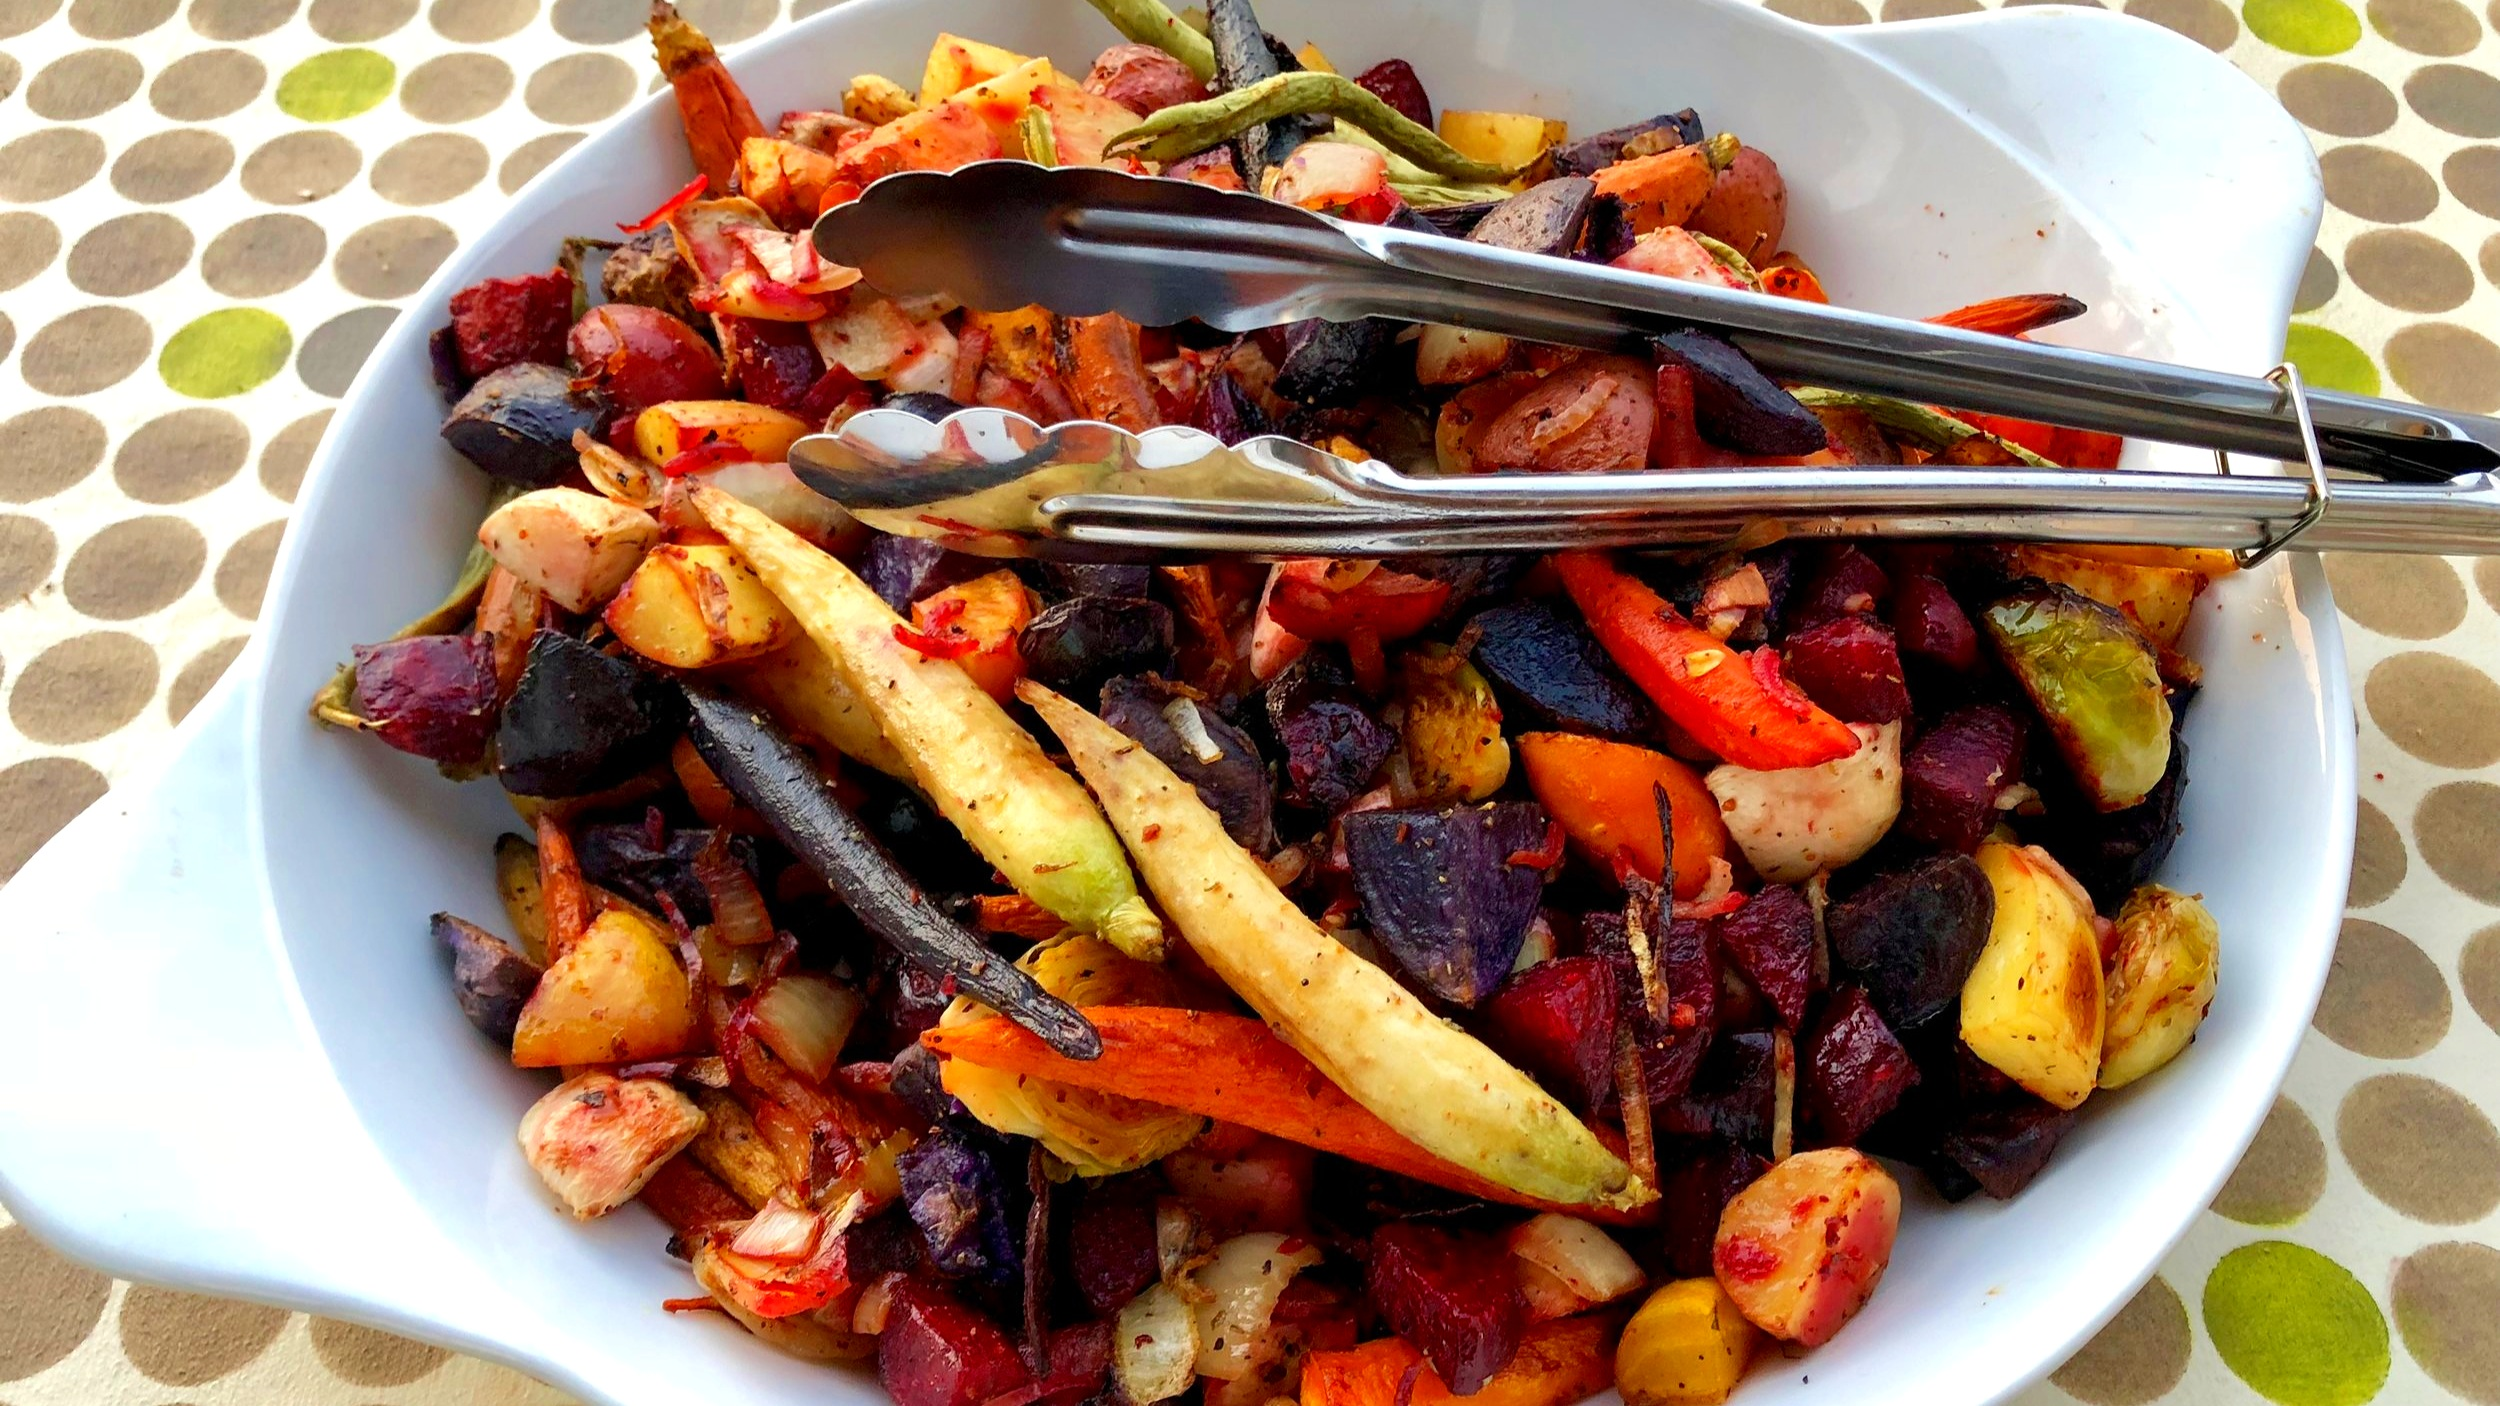 Gorgeous organic oven-roasted root vegetables to accompany grilled salmon; prepared in Sandpoint, ID